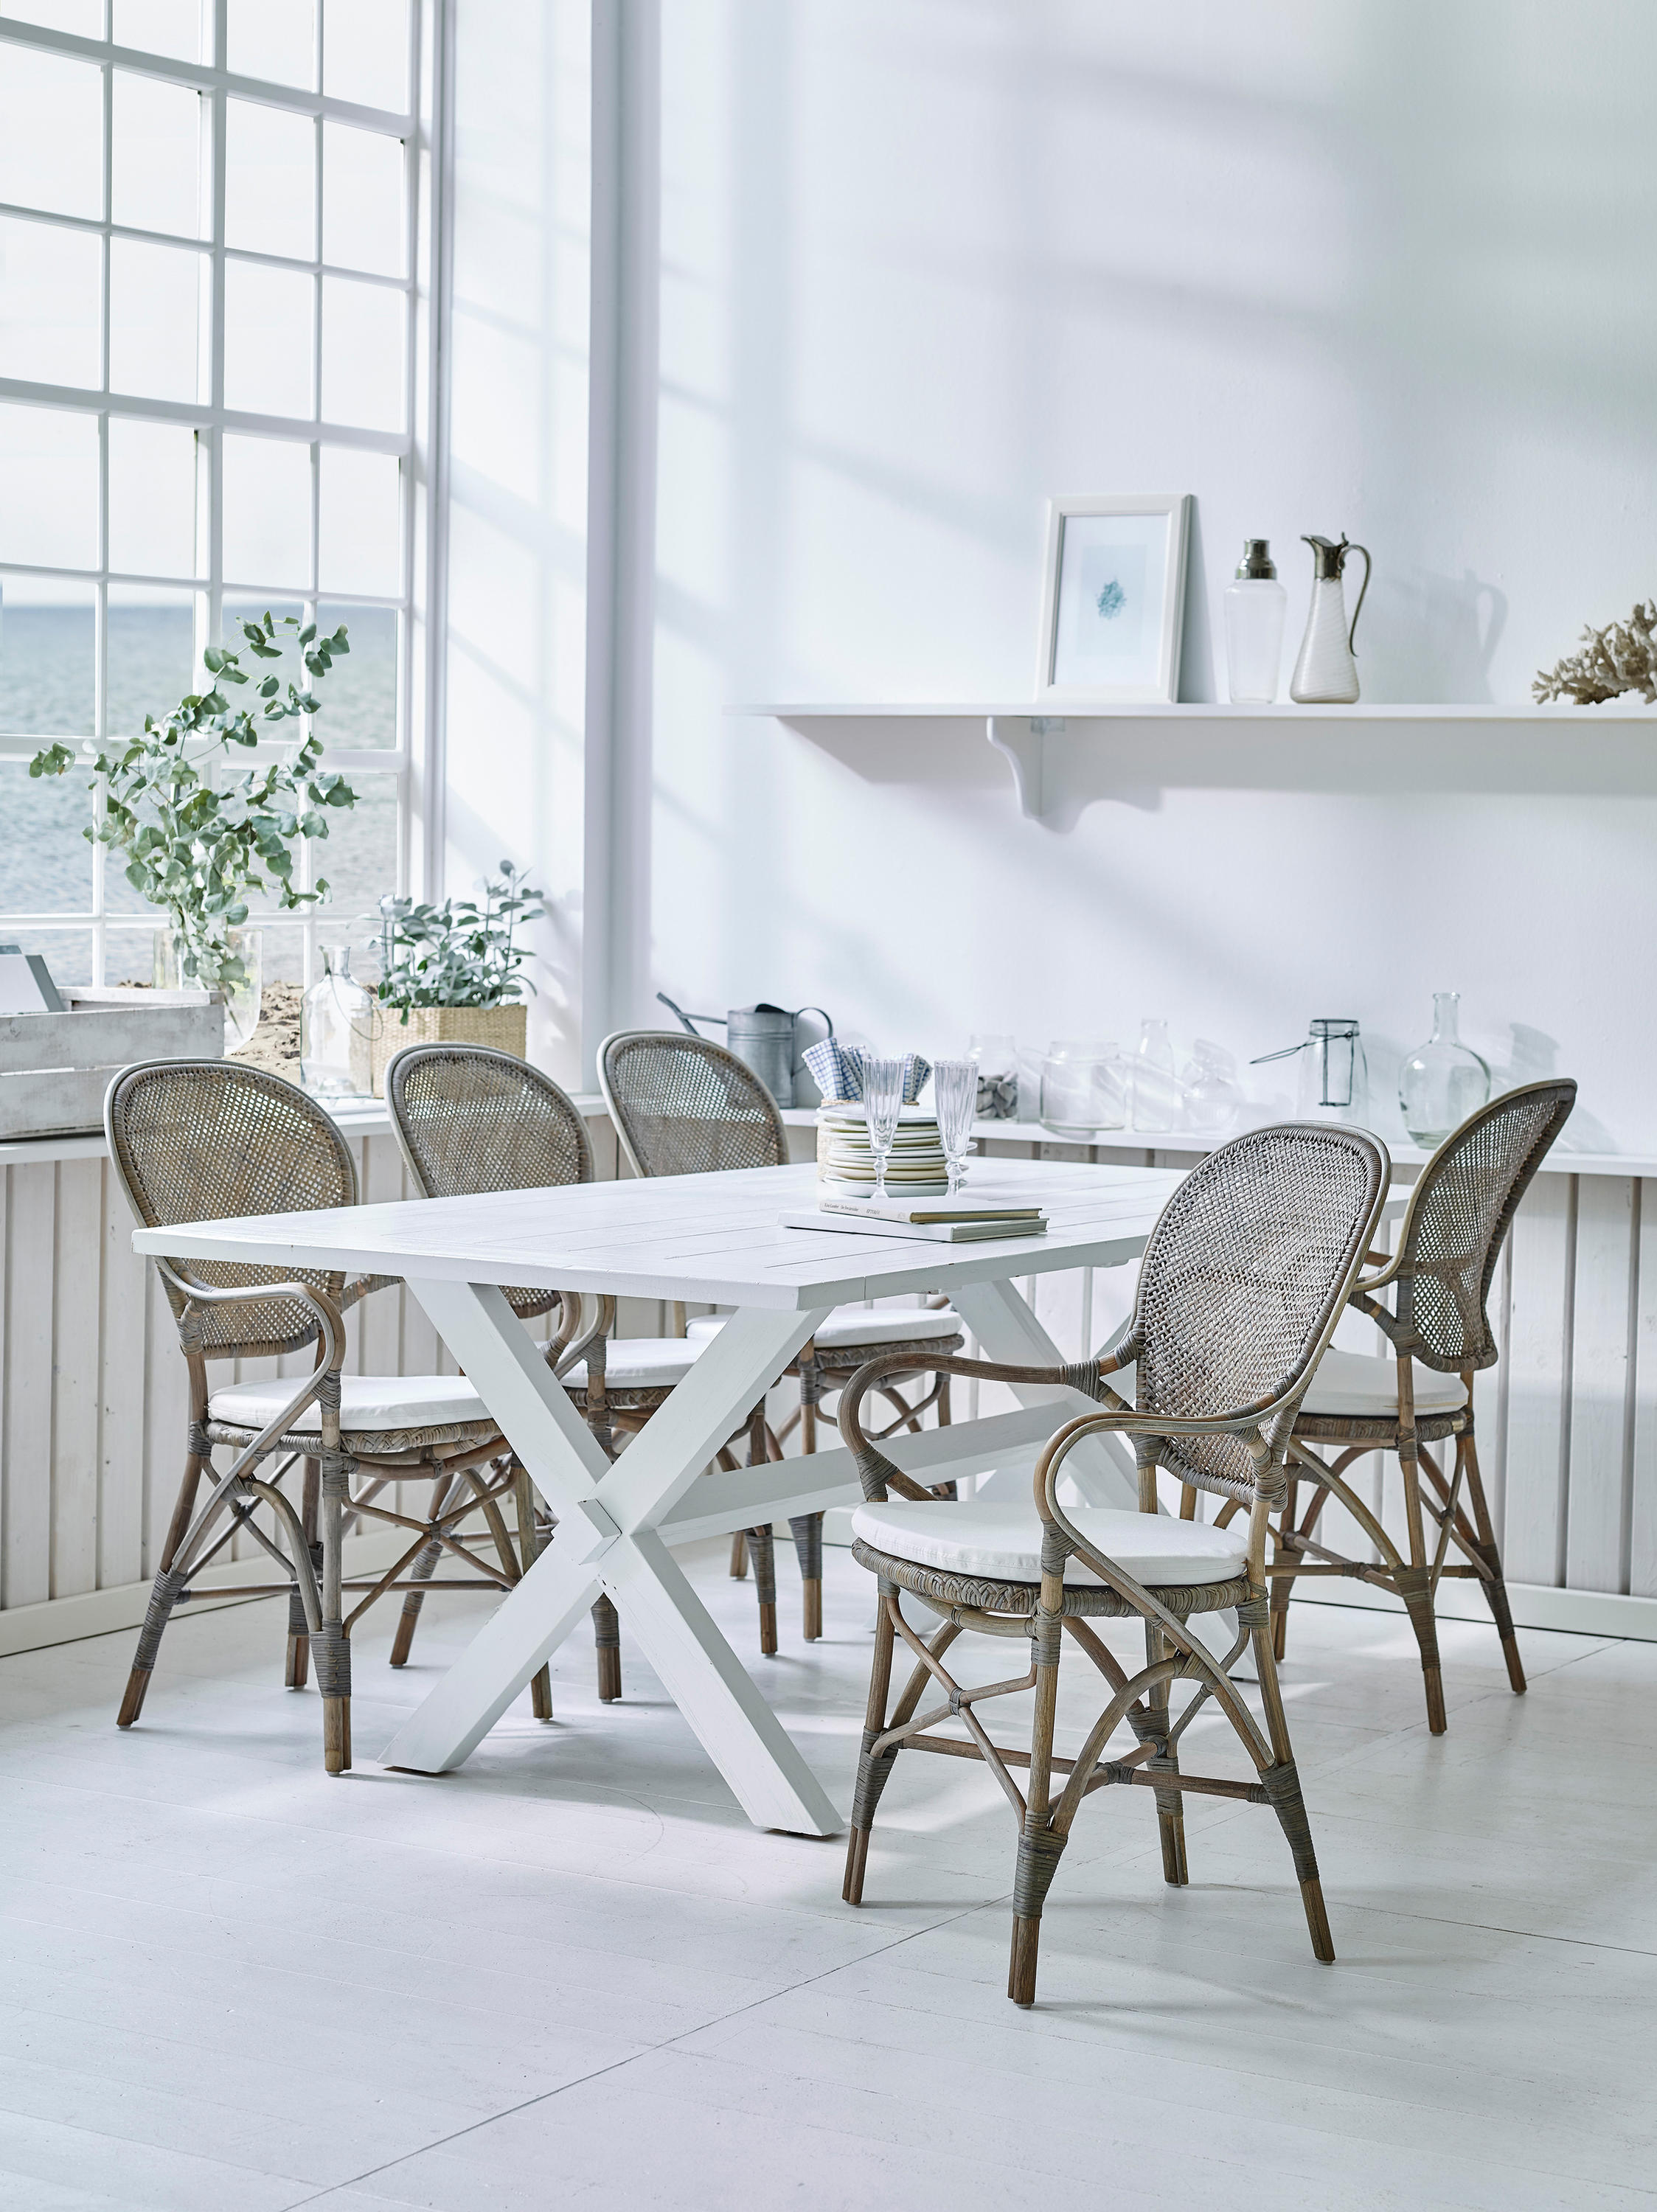 ROSSINI   CHAIR - Chairs from Sika Design   Architonic